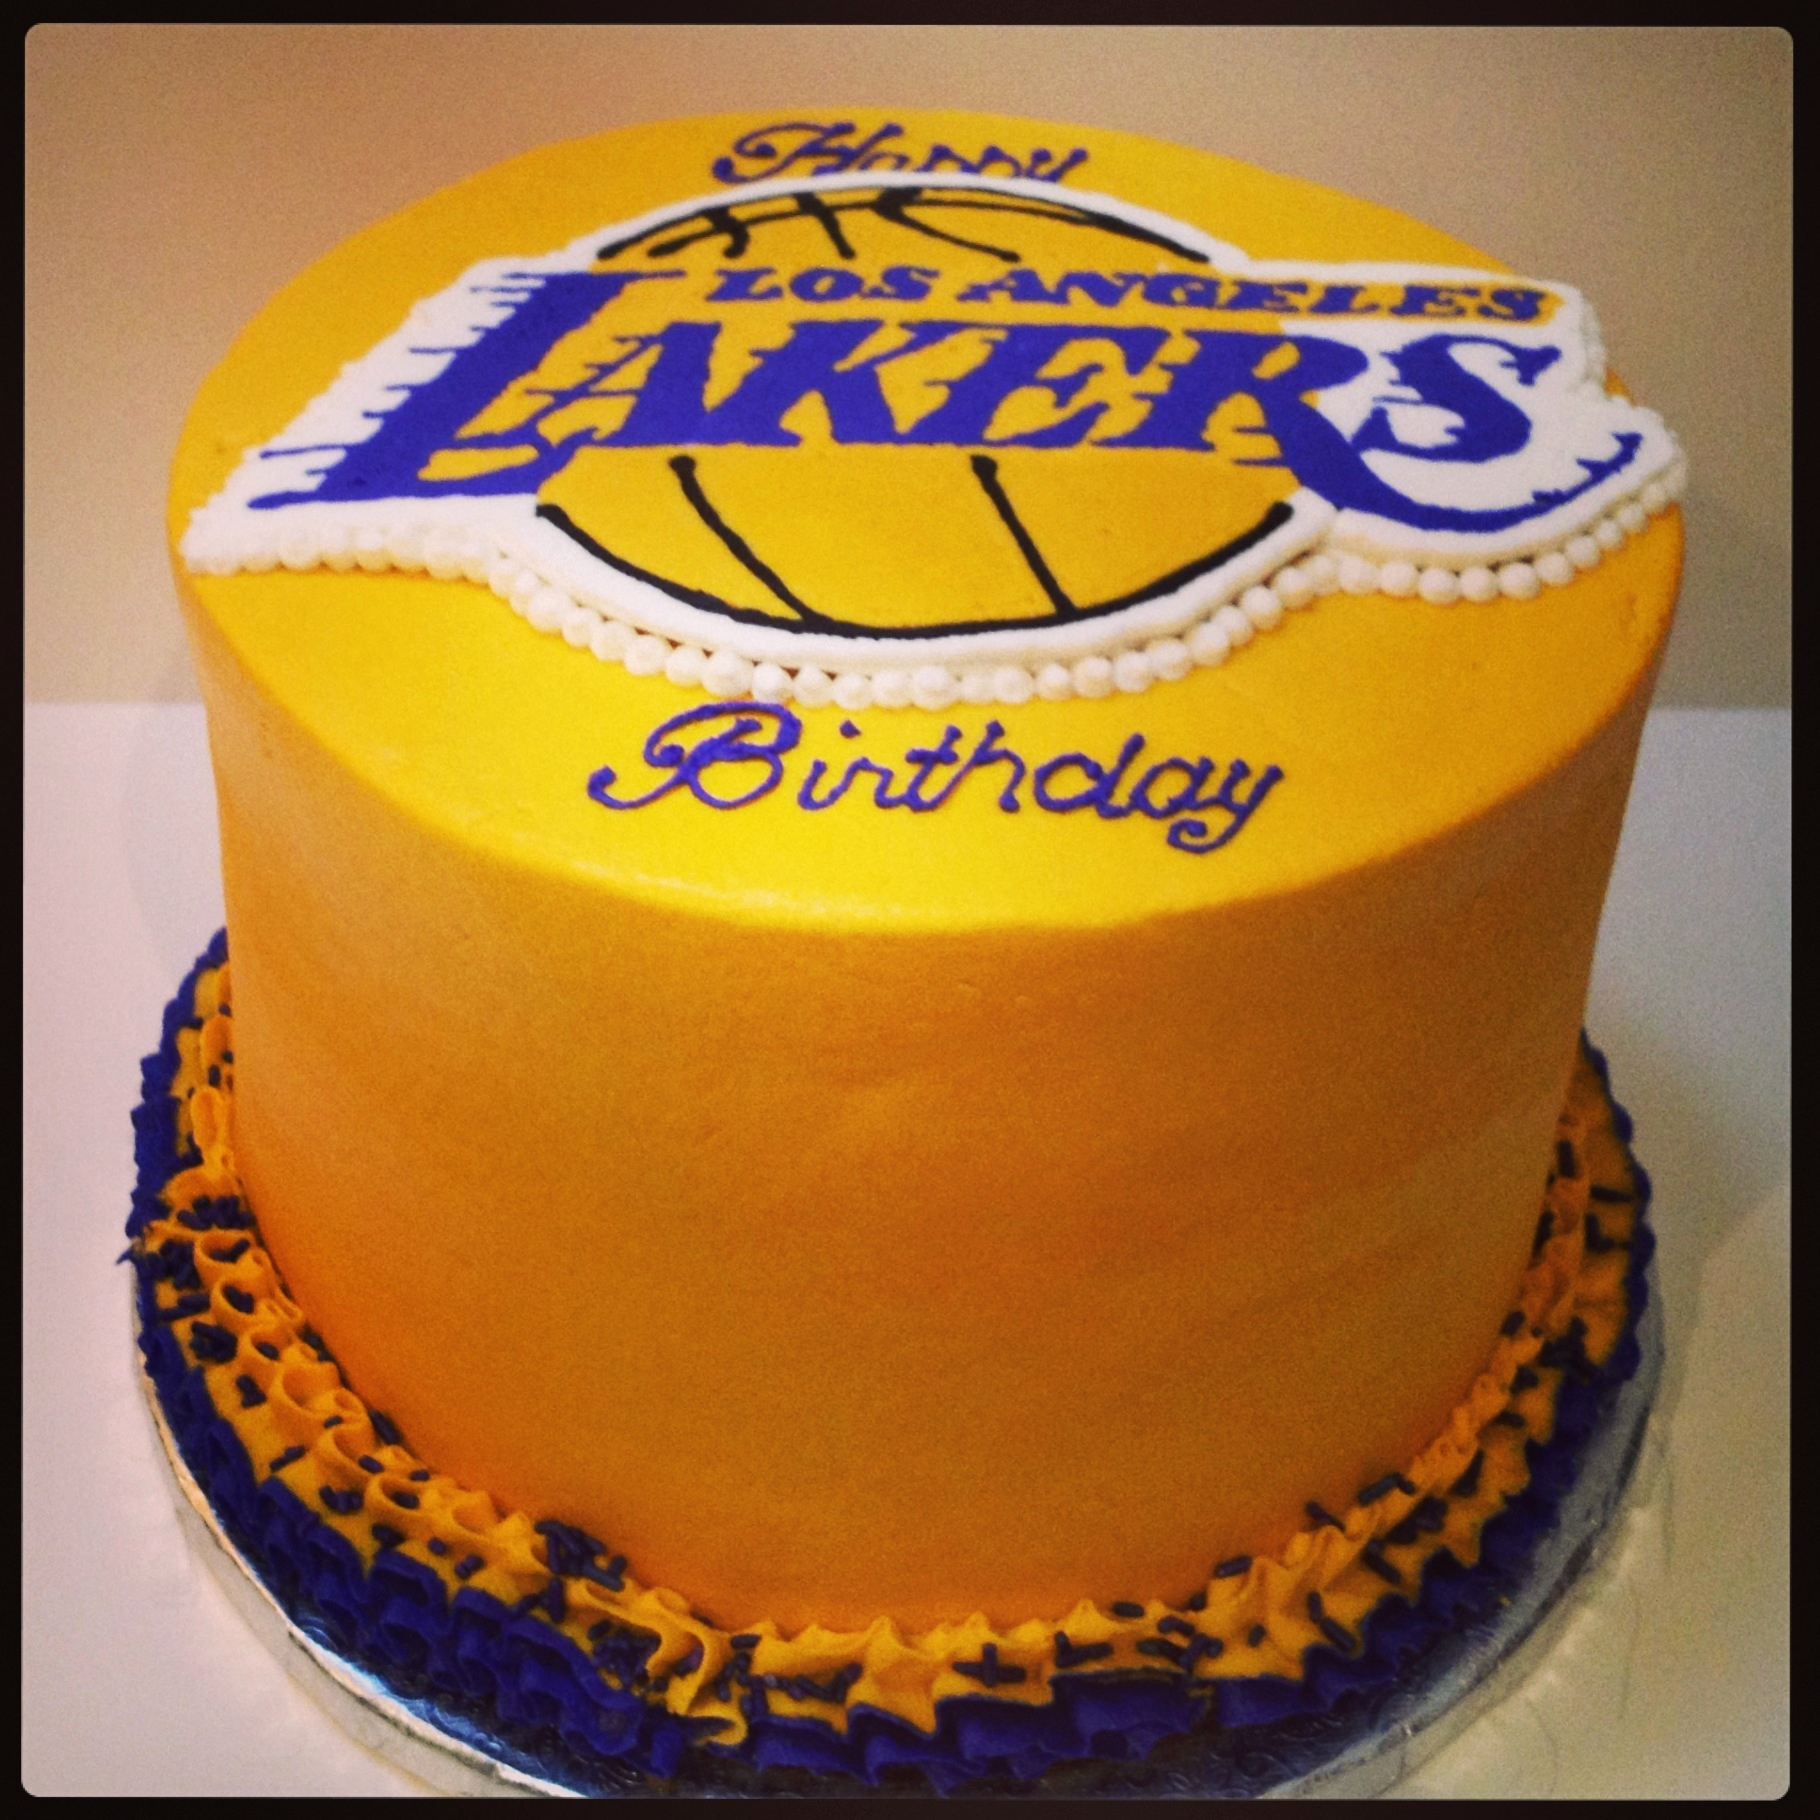 lakers birthday card ; steelers-birthday-card-lovely-lakers-buttercream-cake-rich-hershey-s-black-out-cake-of-steelers-birthday-card